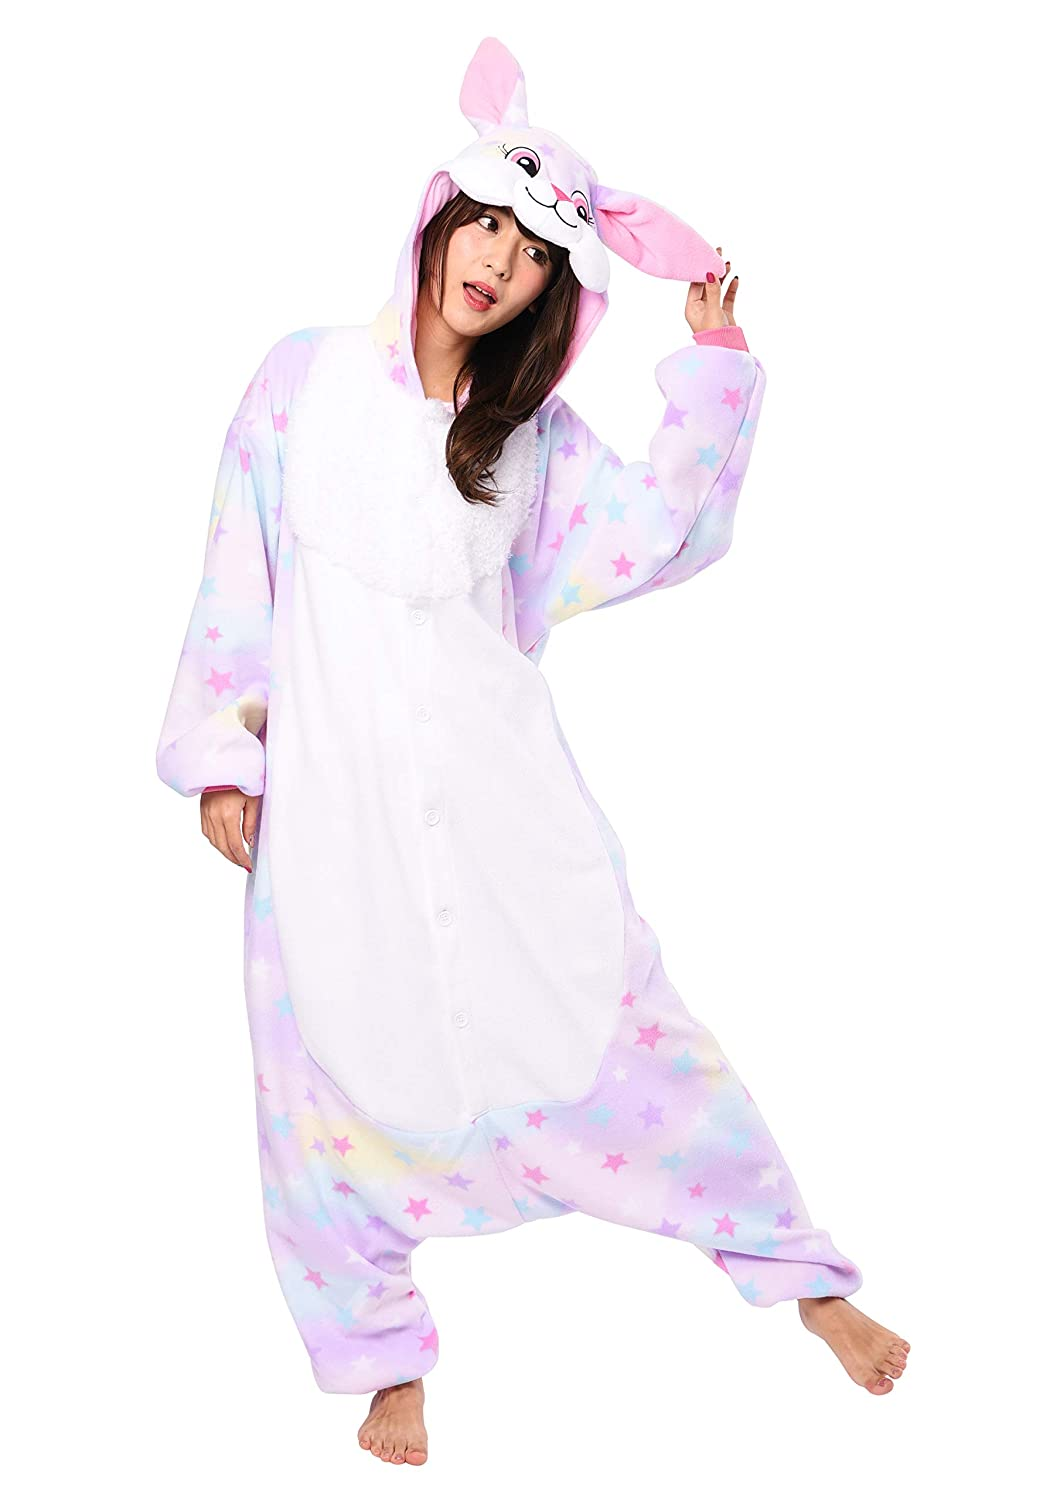 d9531cf5f282 Amazon.com  Rabbit Onesie Kigurumi  Clothing